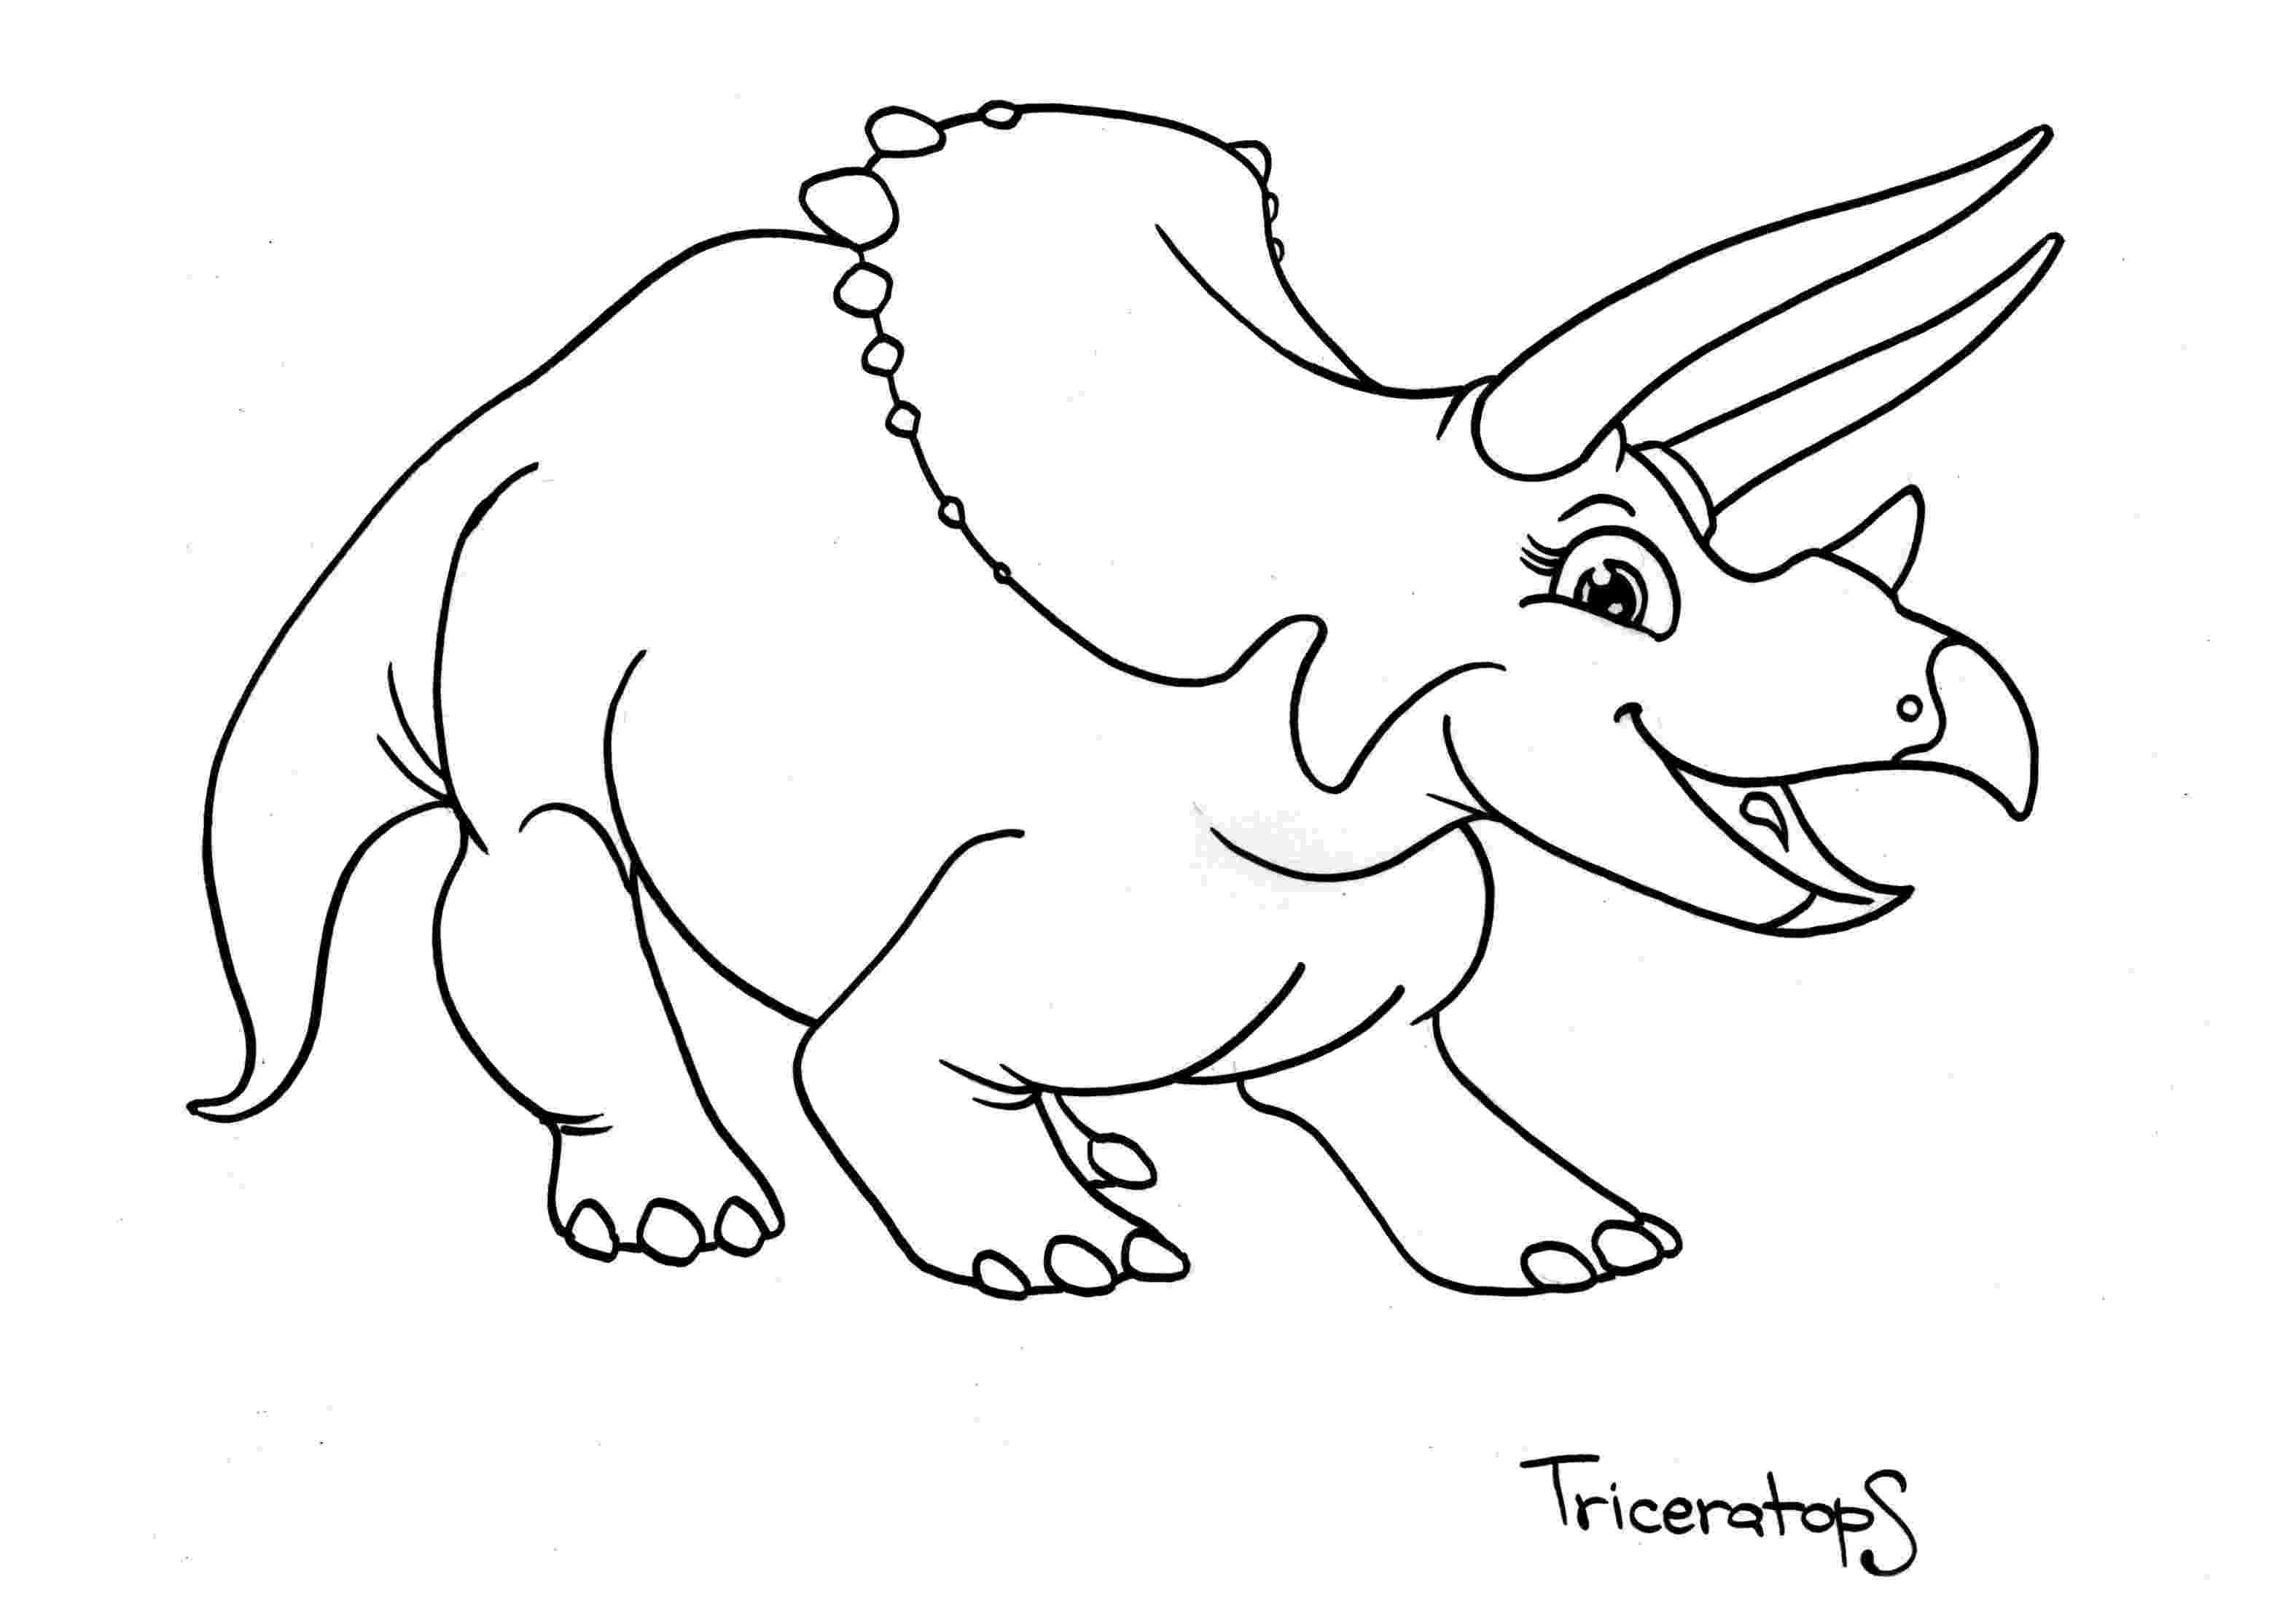 colouring pages dinosaurs printable cute cartoon dinosaur coloring page free printable printable dinosaurs pages colouring